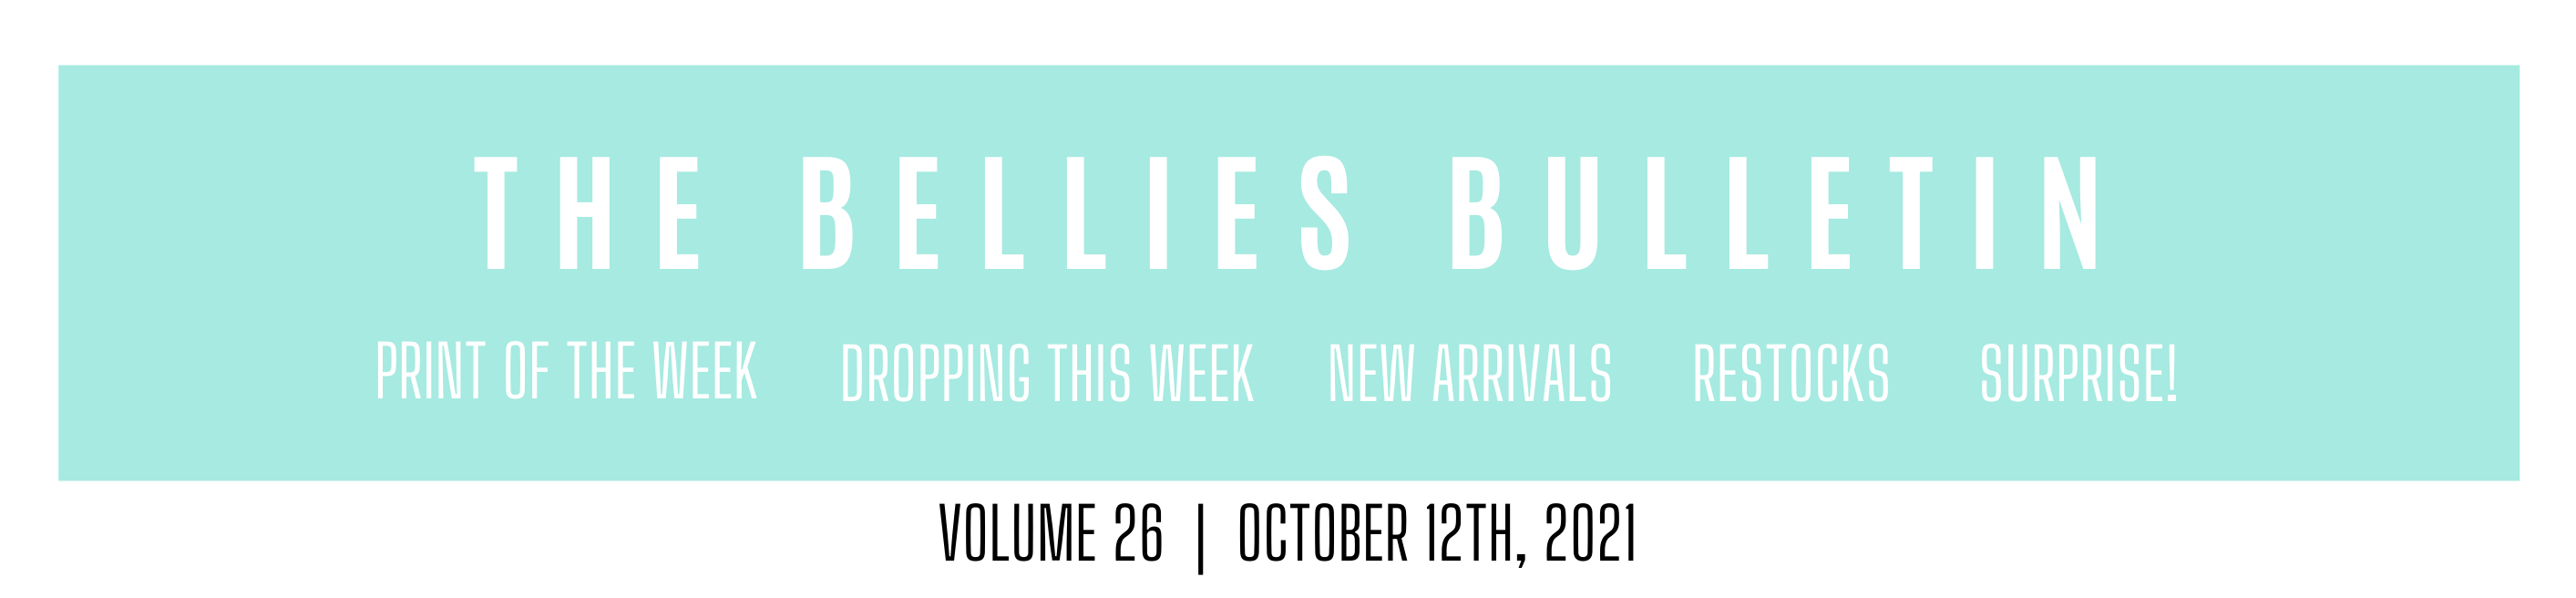 the bellies bulletin volume 26th october 12th 2021